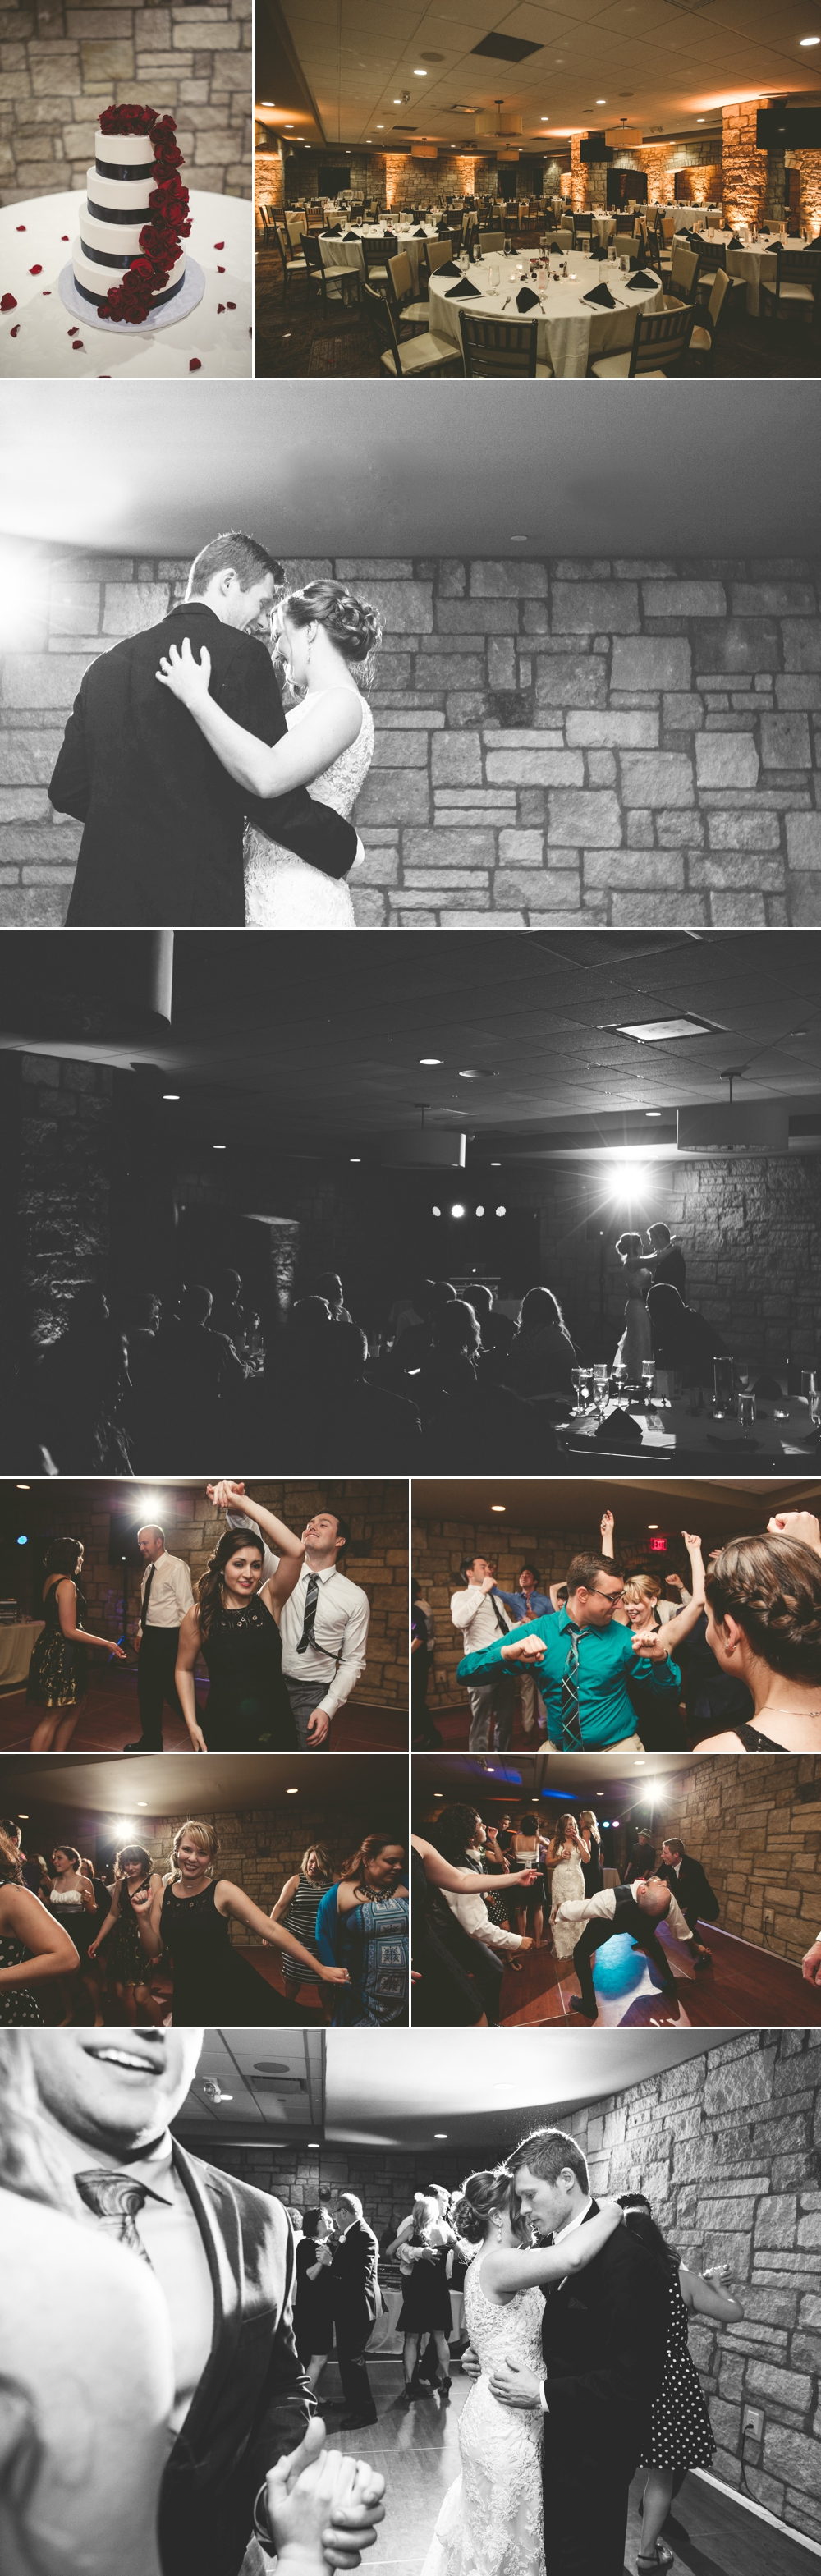 jason_domingues_photography_wedding_best_photographer_kansas_city_kc_lawrence_ks_oread_hotel_creative_documentary_0003